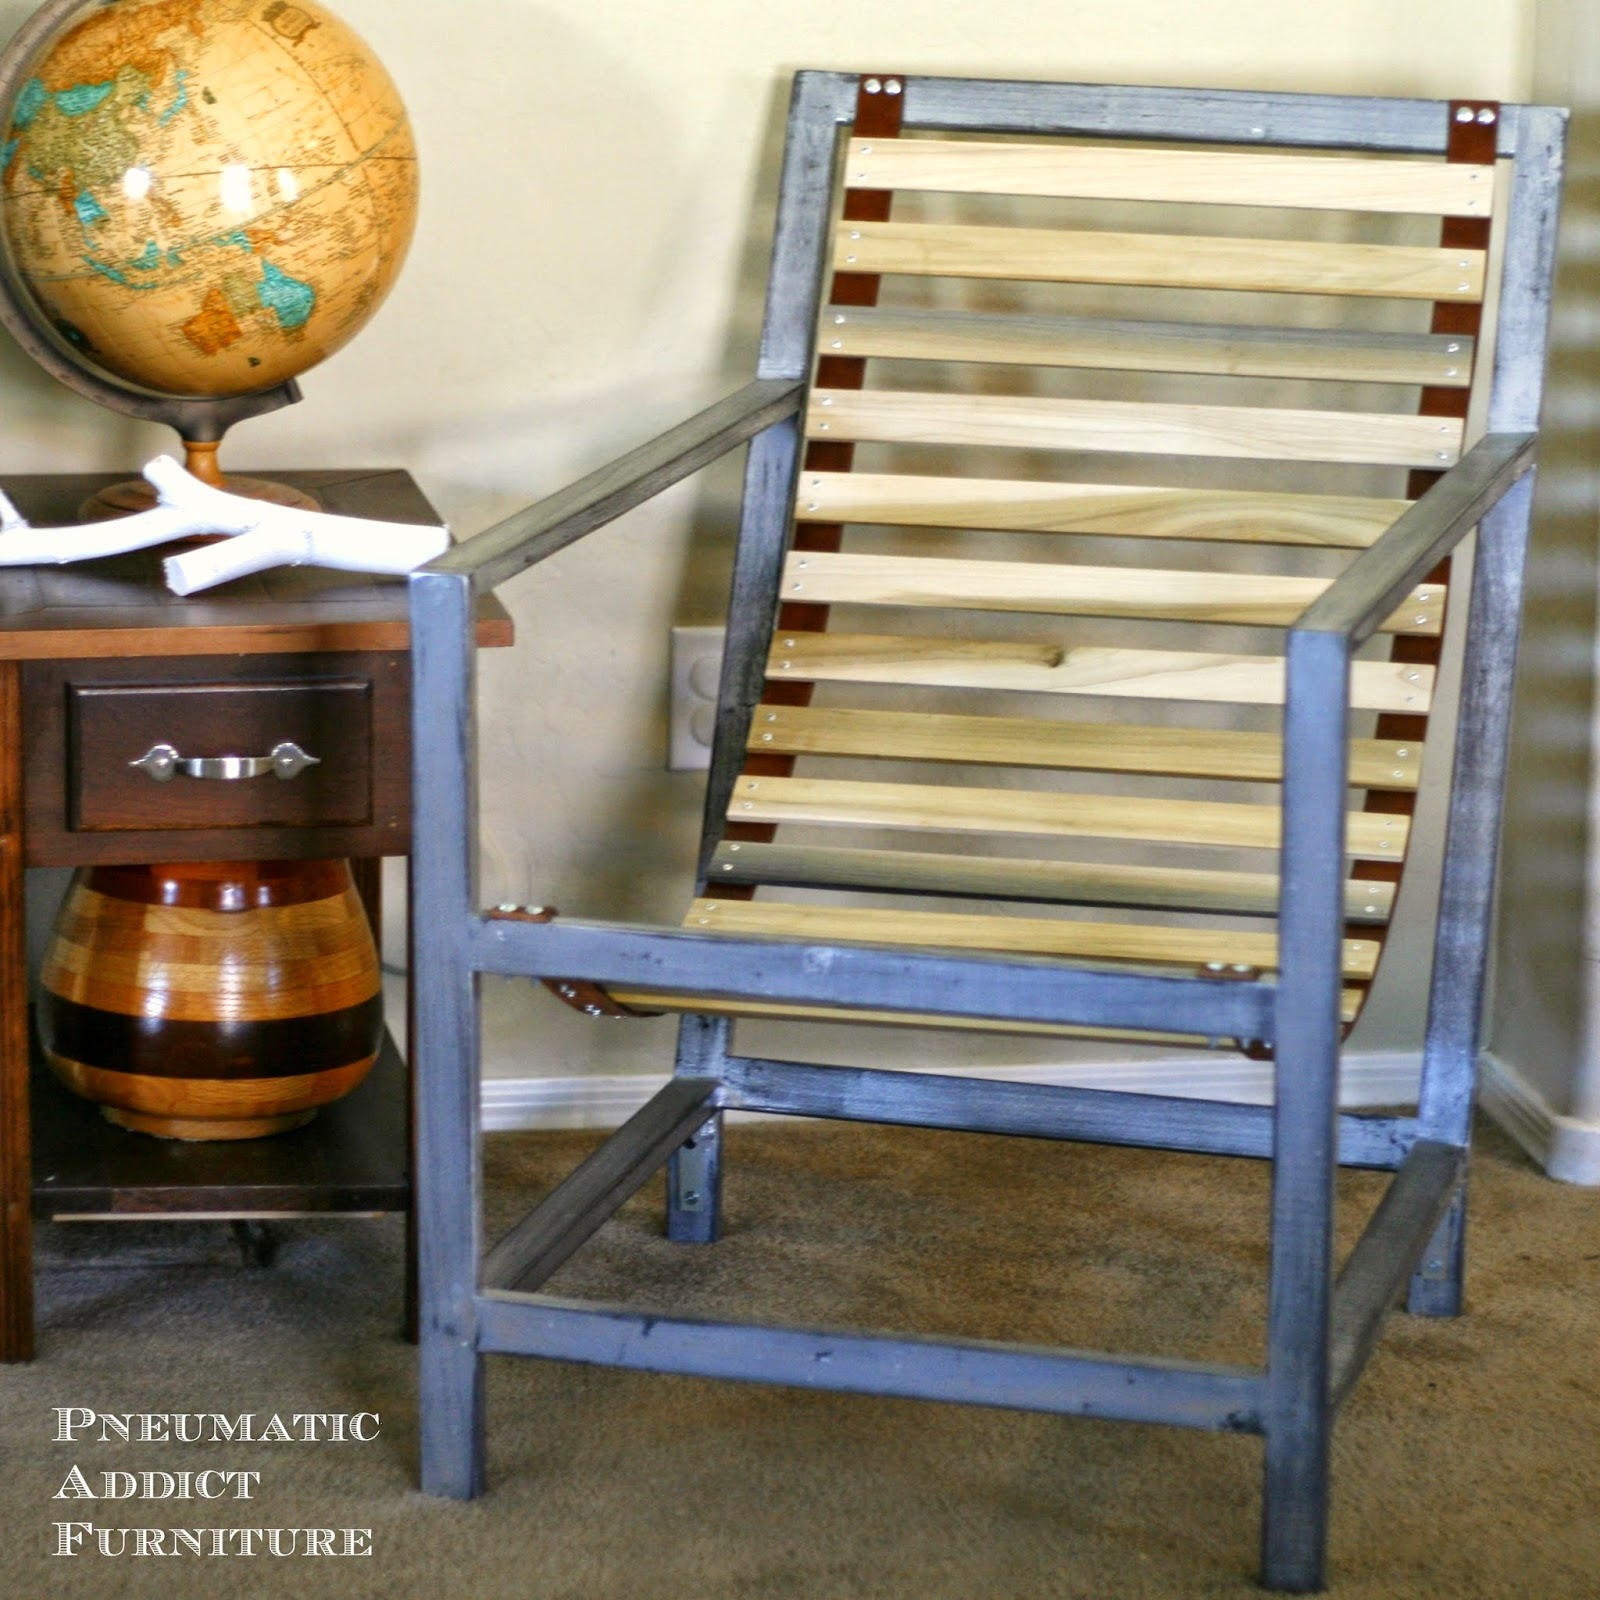 Pneumatic Addict Wood and Leather Sling Chair